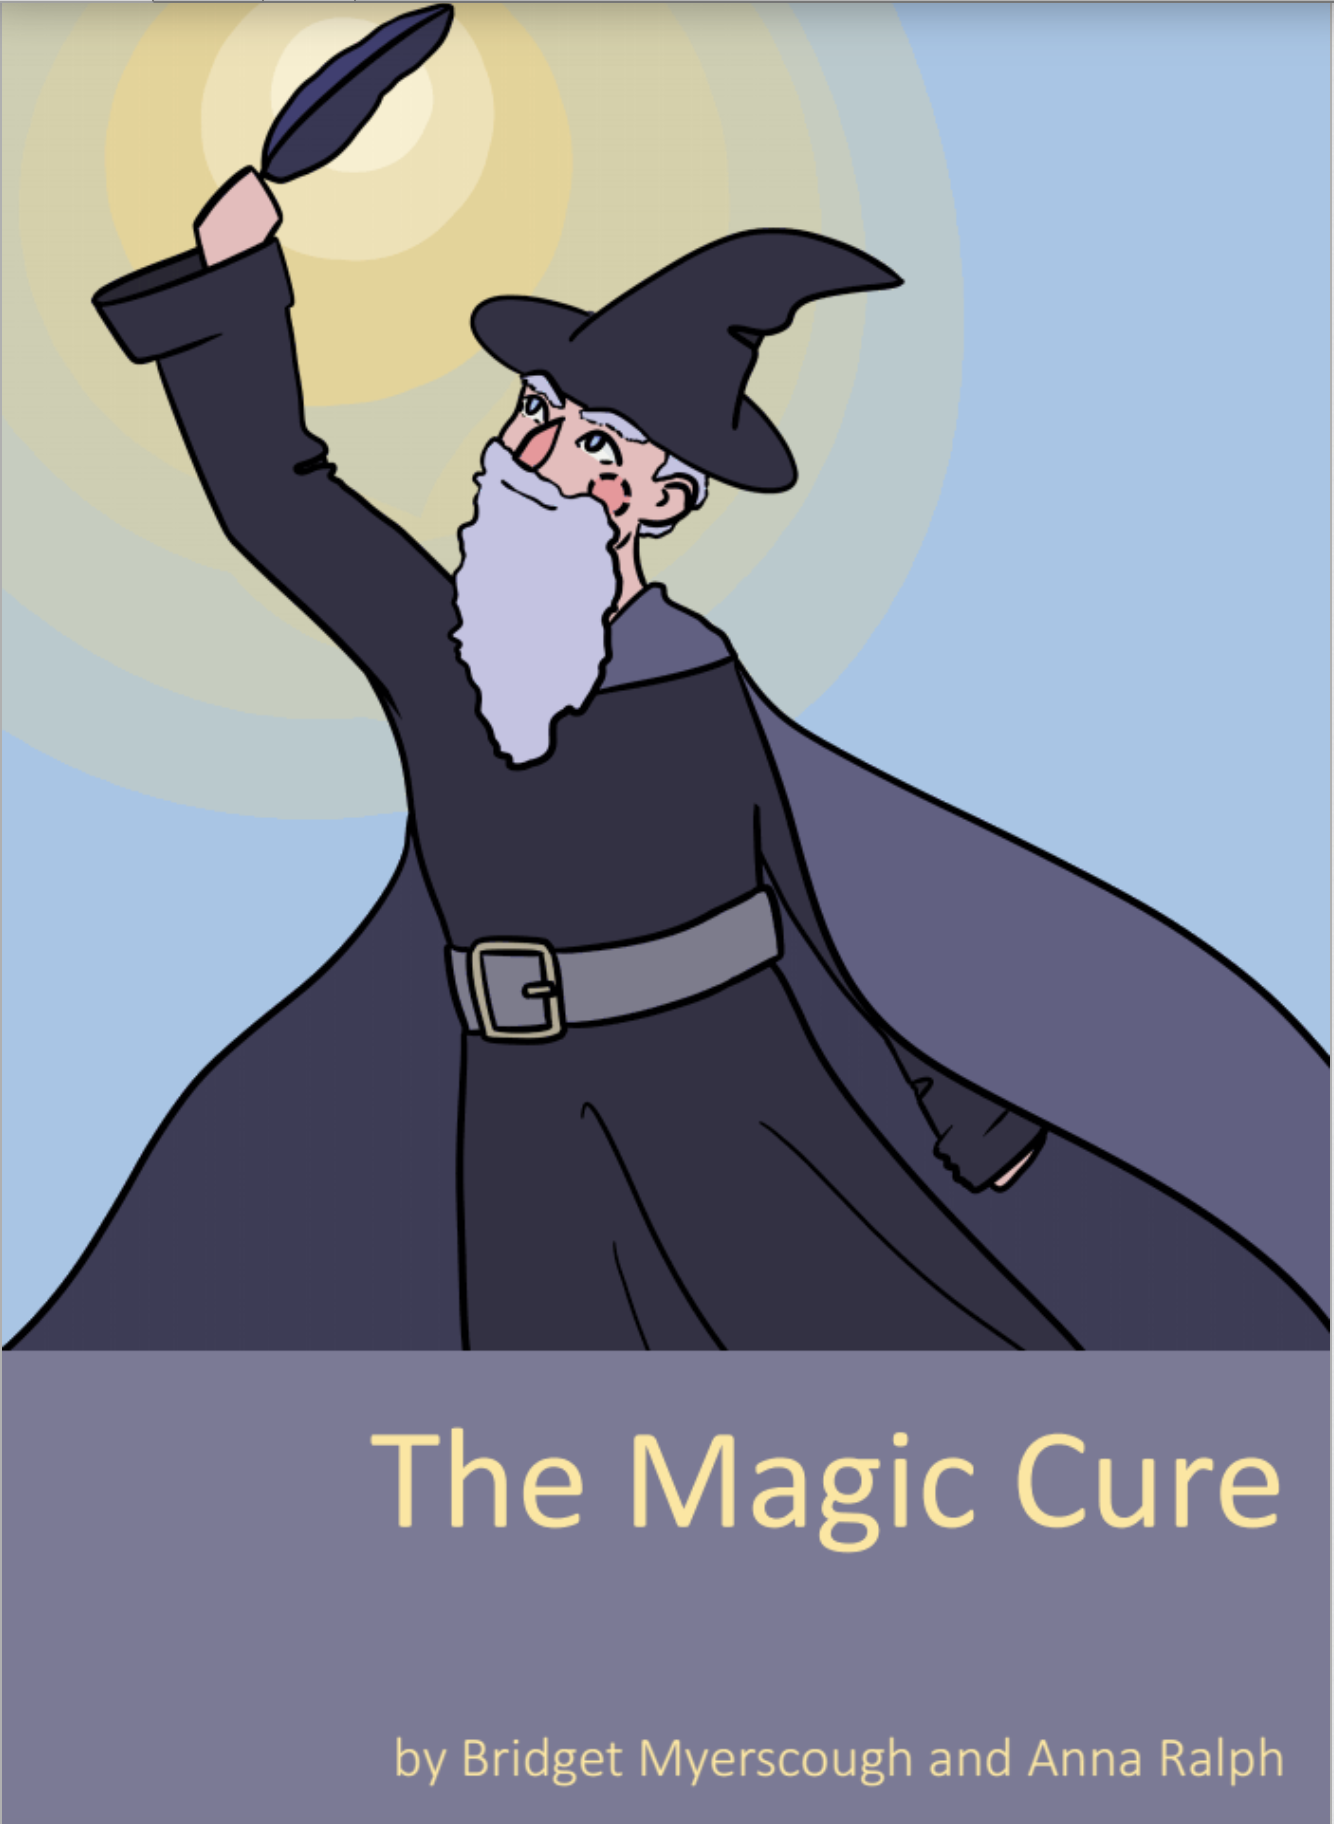 The Magic Cure